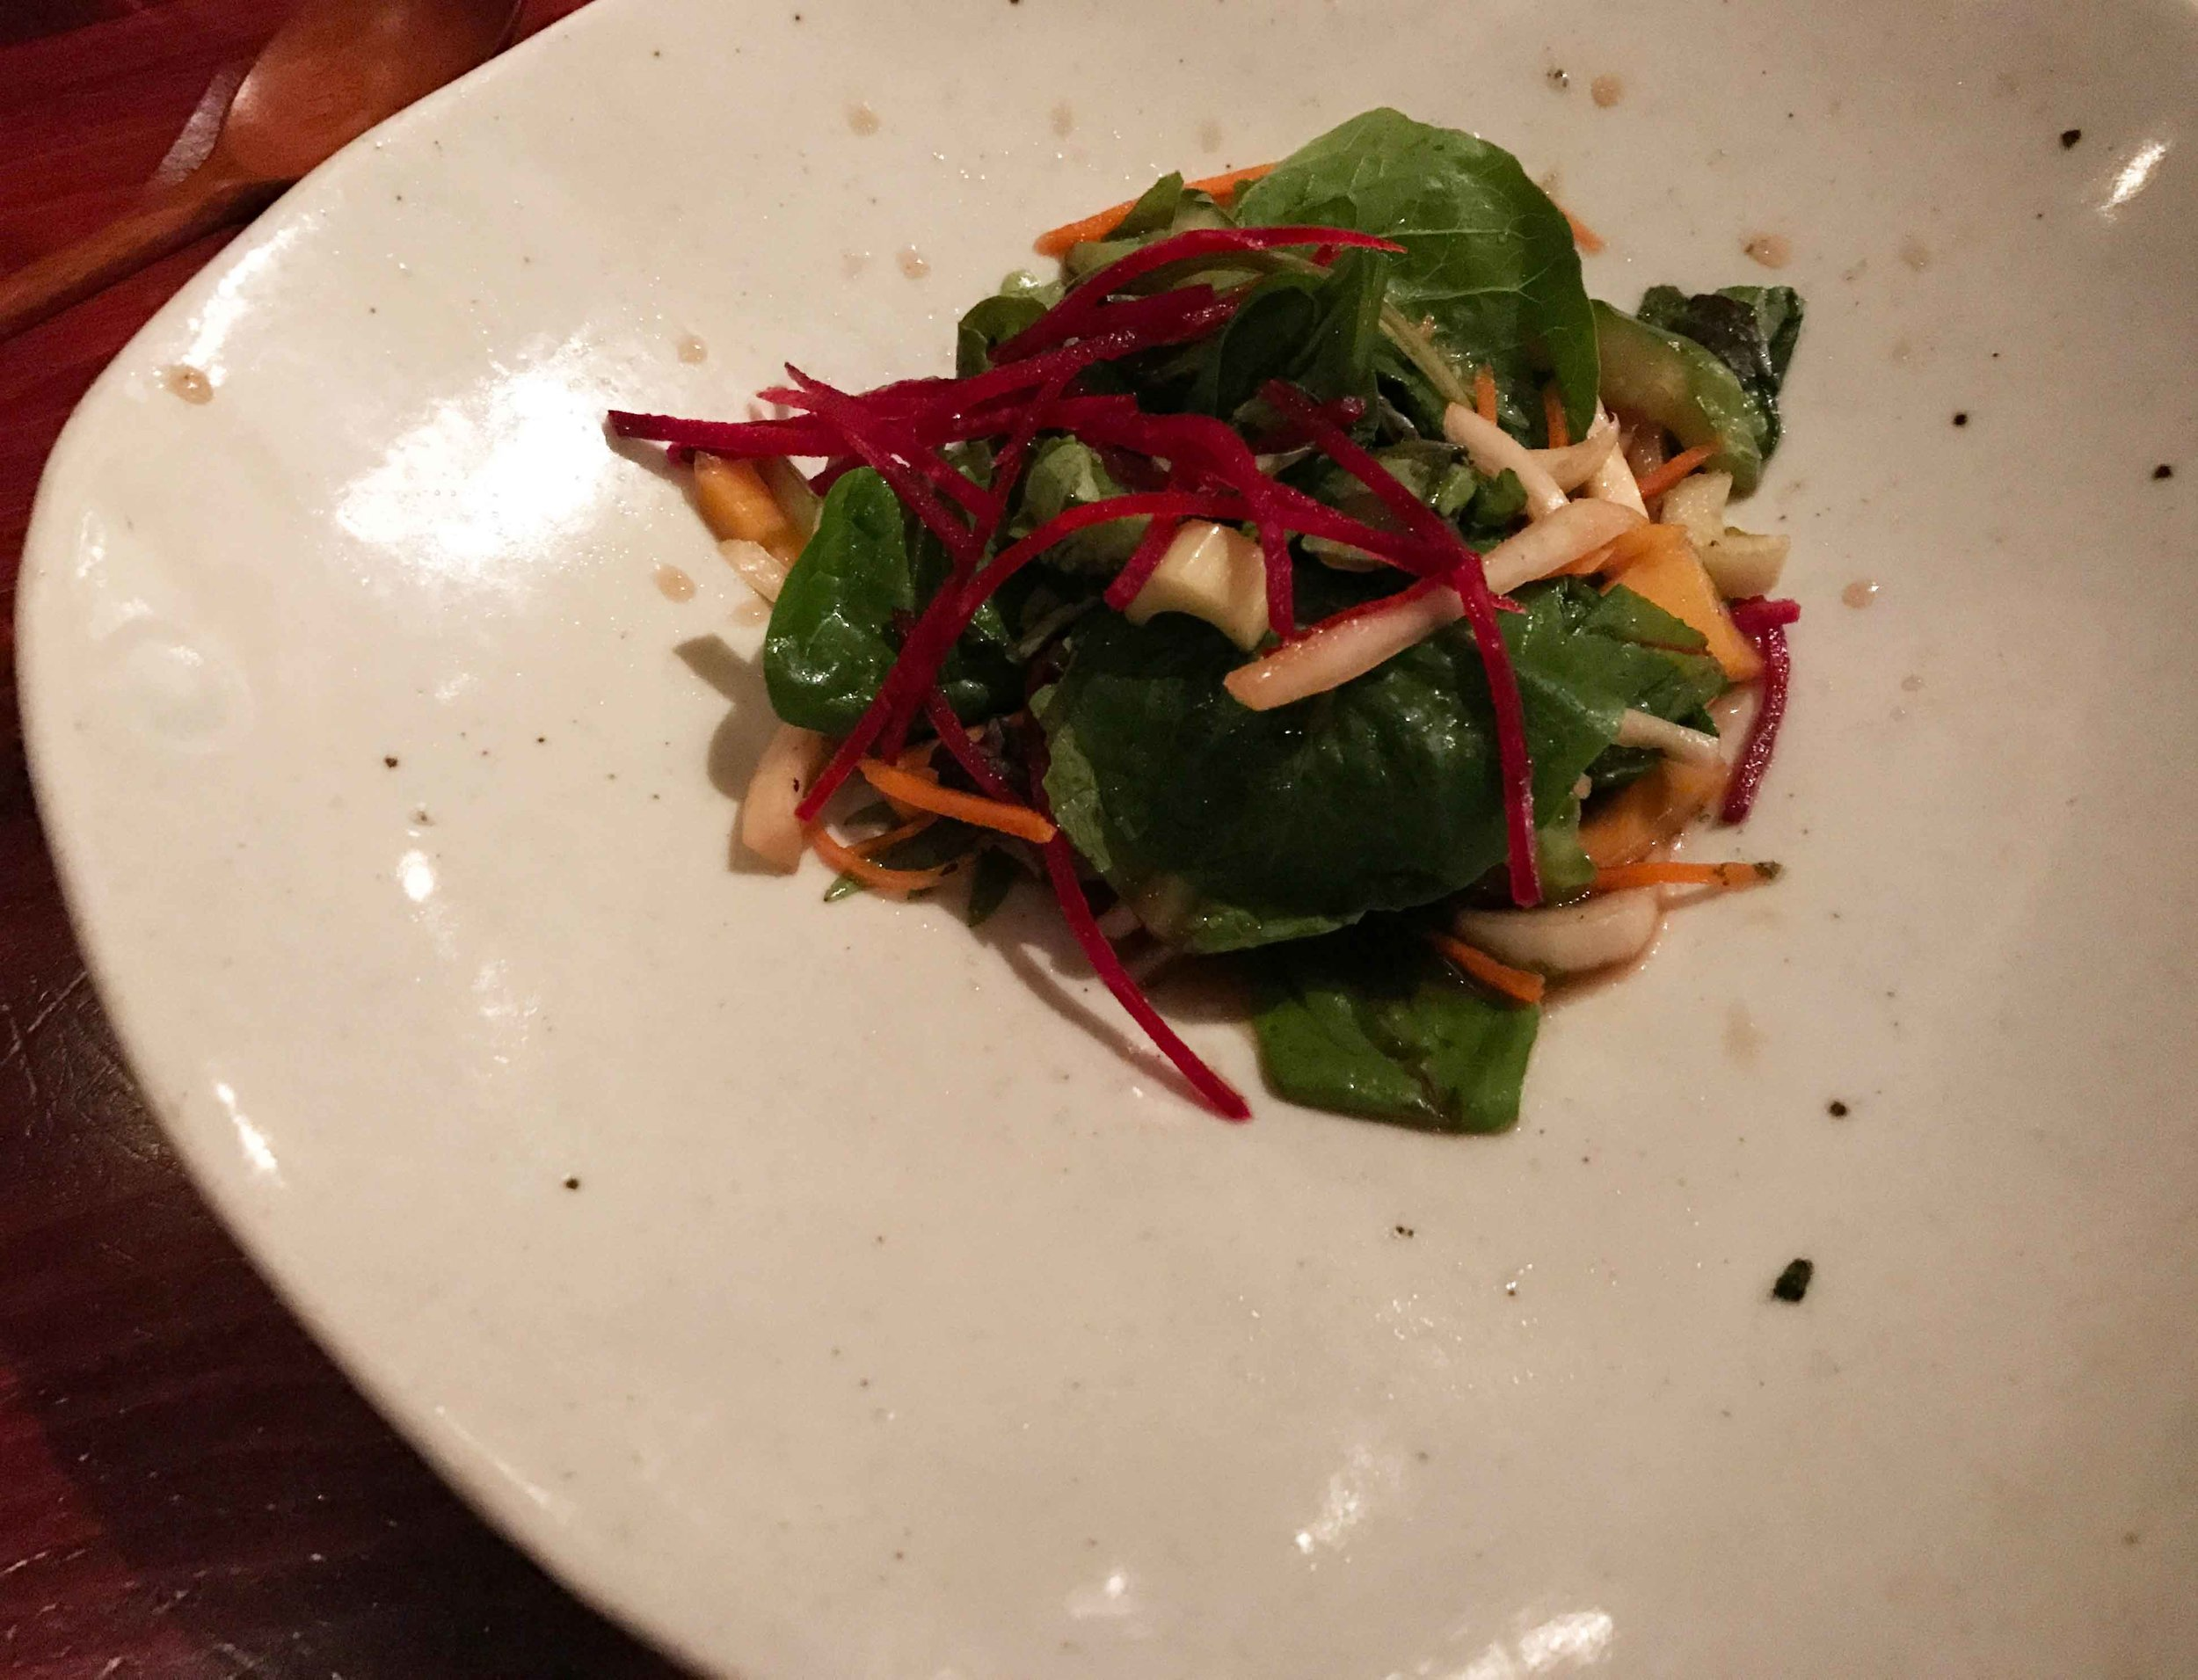 Bell flower root and celery salad with mixed greens, persimmon, and cucumber in Korean apricot dressing.